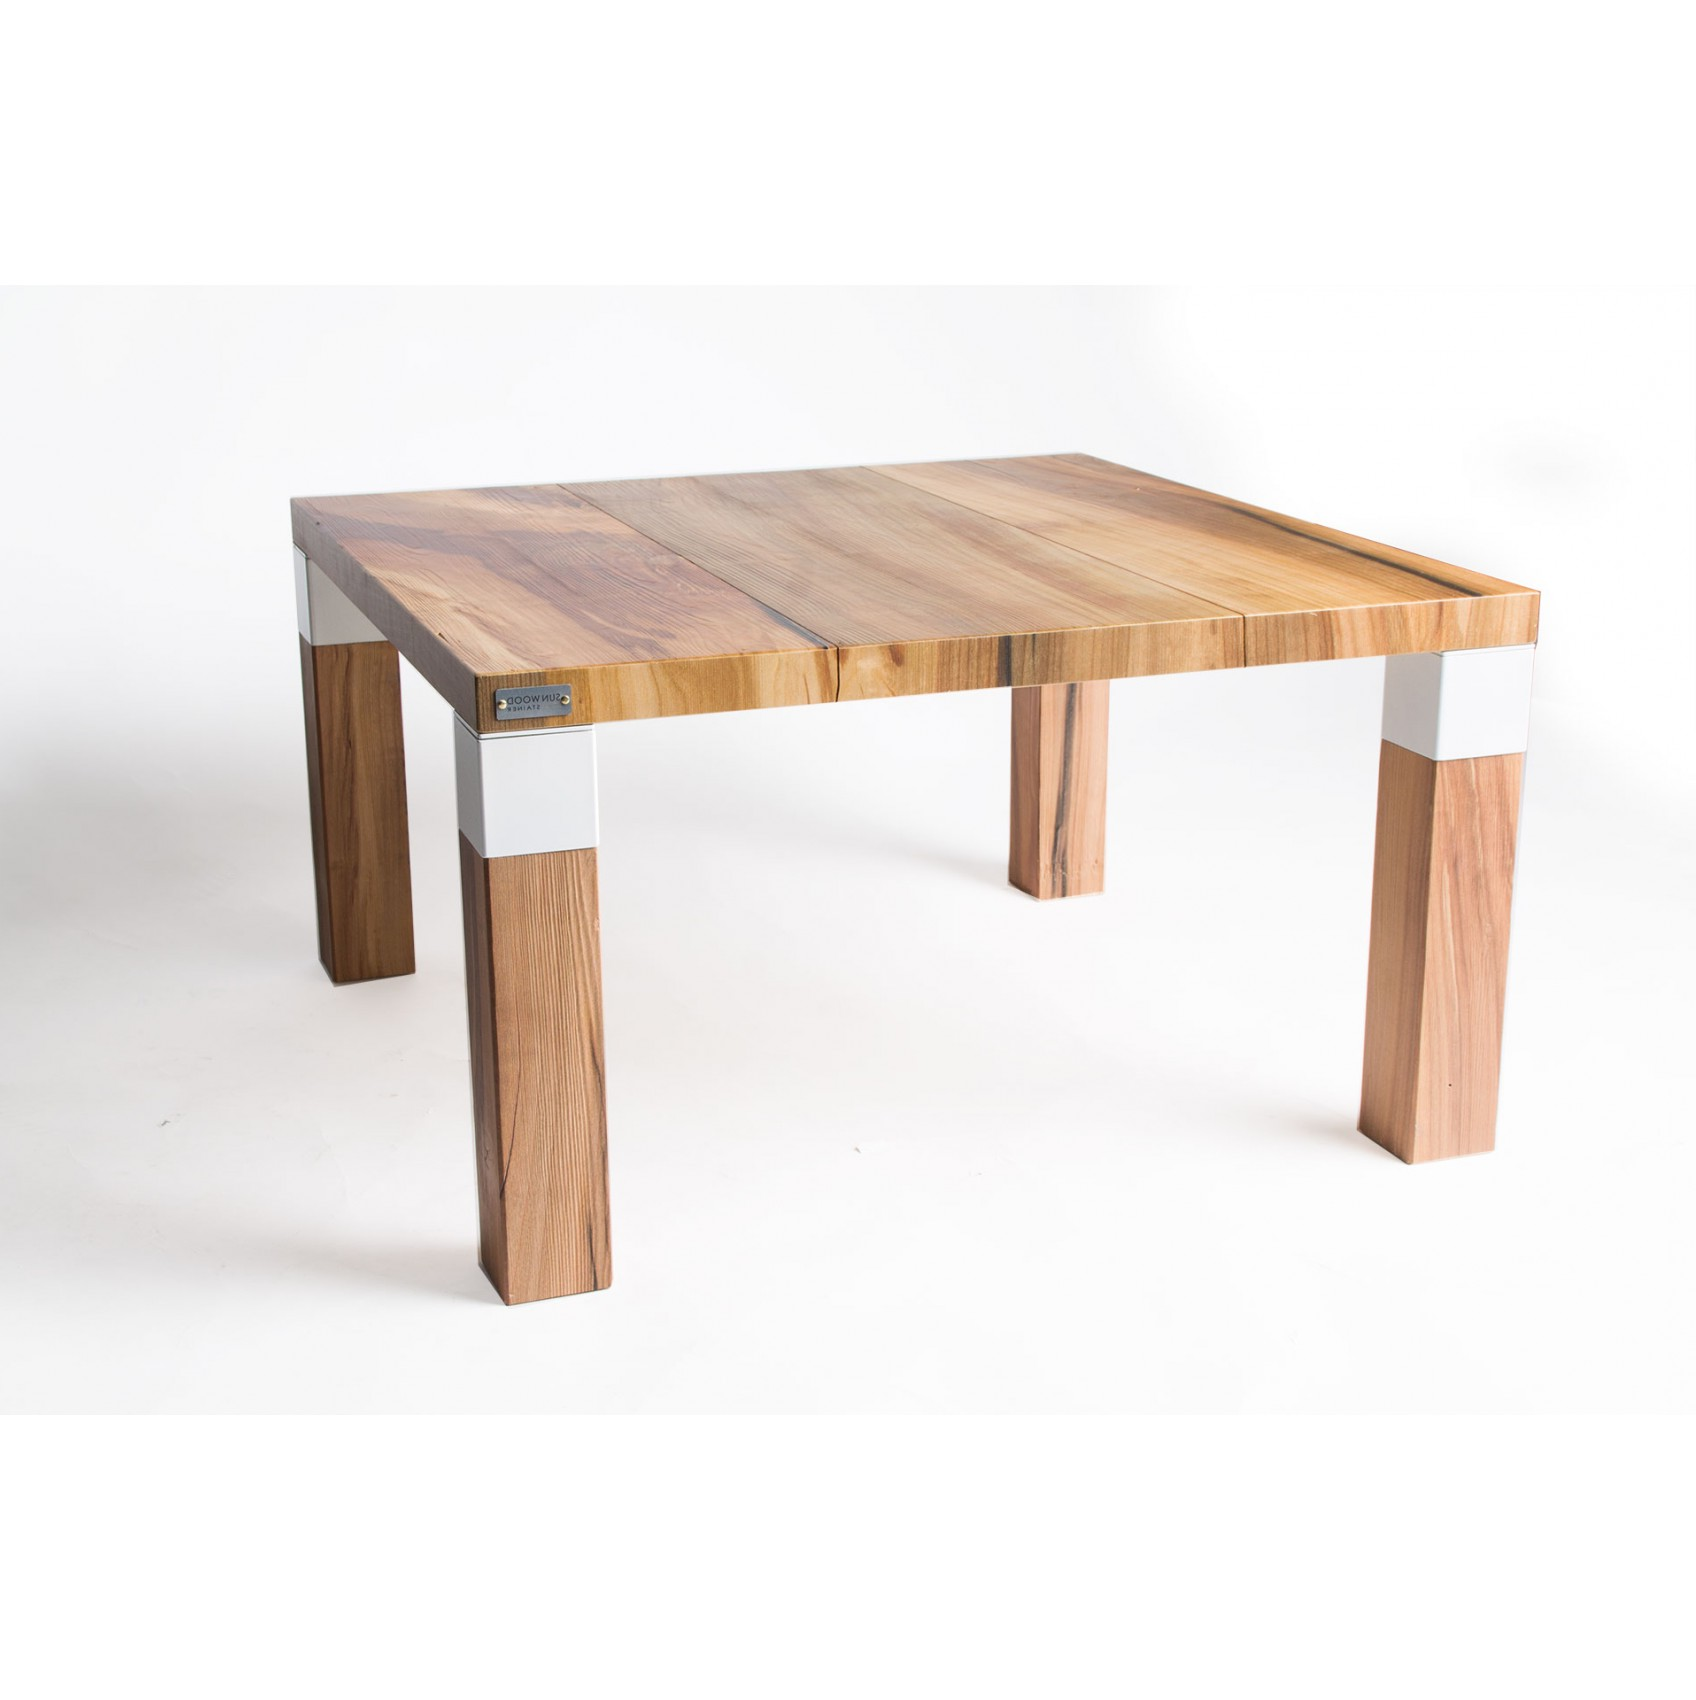 Unfinished Wood Coffee Table Legs Wood